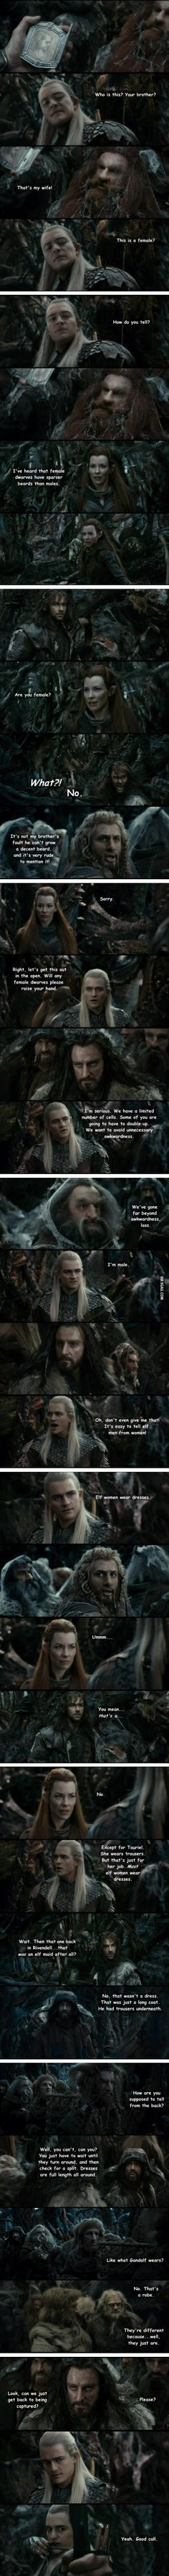 Elves and Dwarves - the scene you wish was real <- THIS HAS TO BE REAL. I'M DYING!